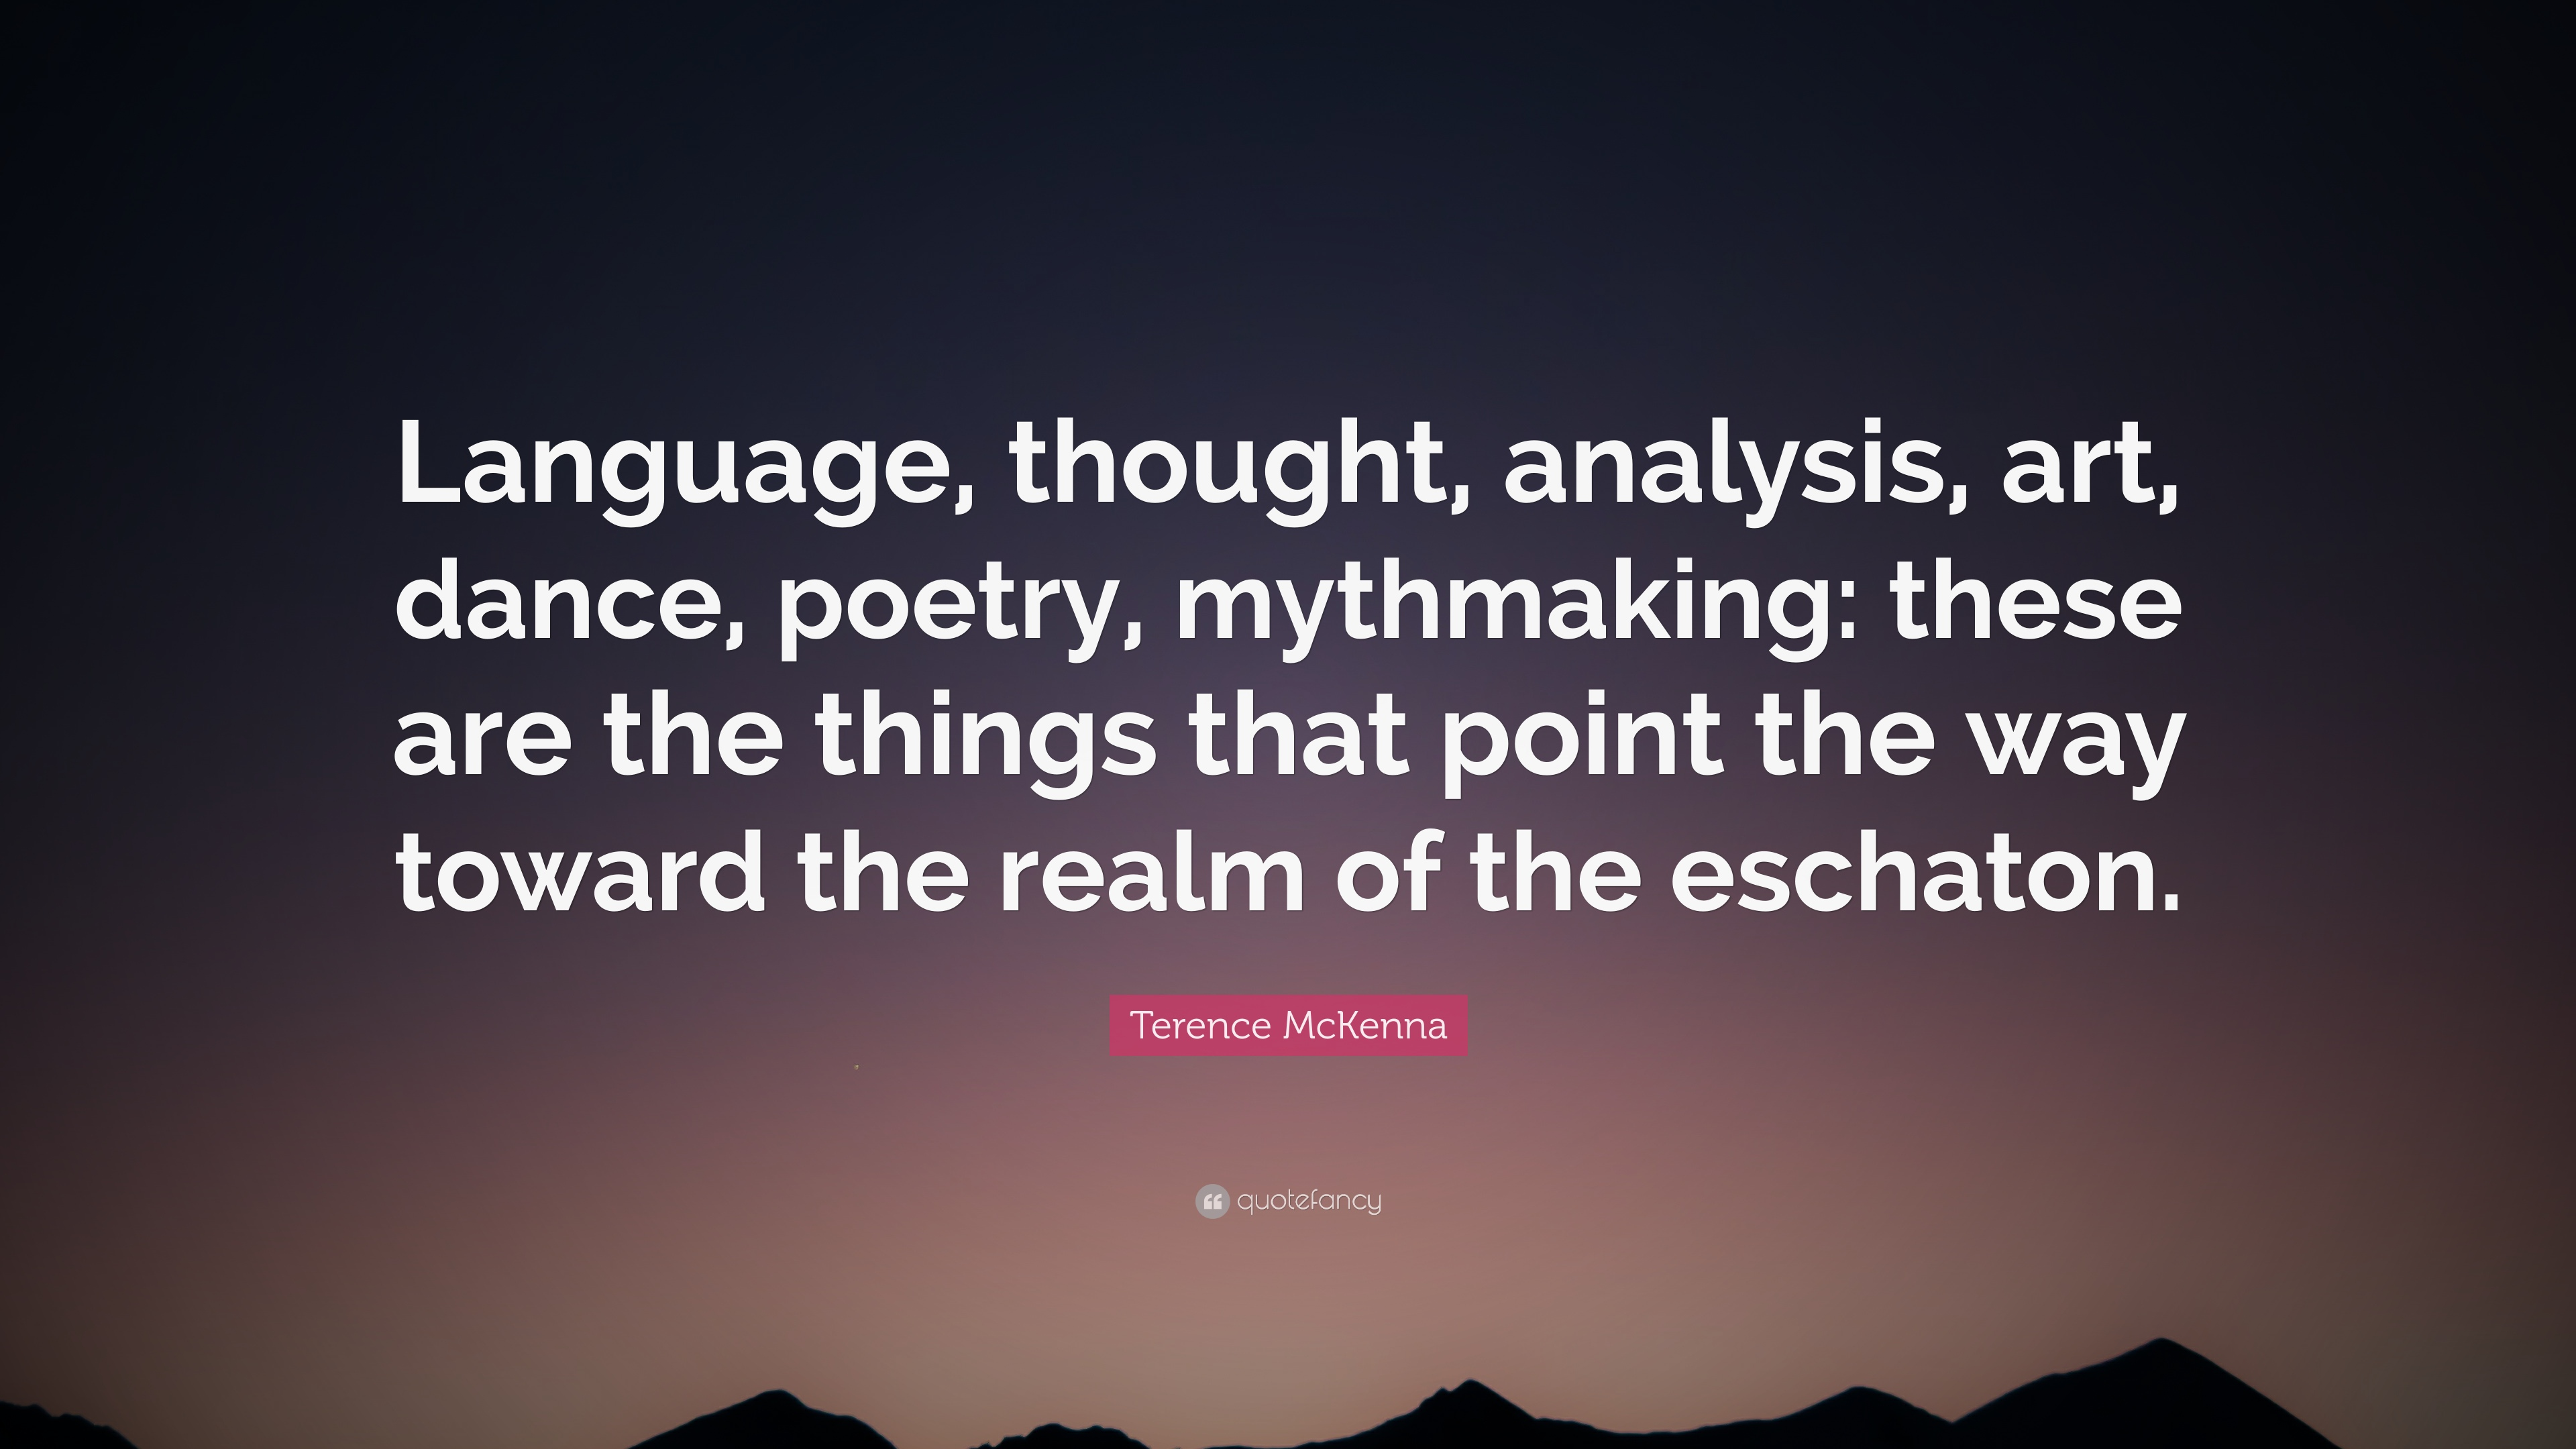 an analysis of the thoughts and the physical realm Philosophy final exam  he believed that the objects in the lower realm were physical objects, and the objects in the higher realm were things he called, forms .